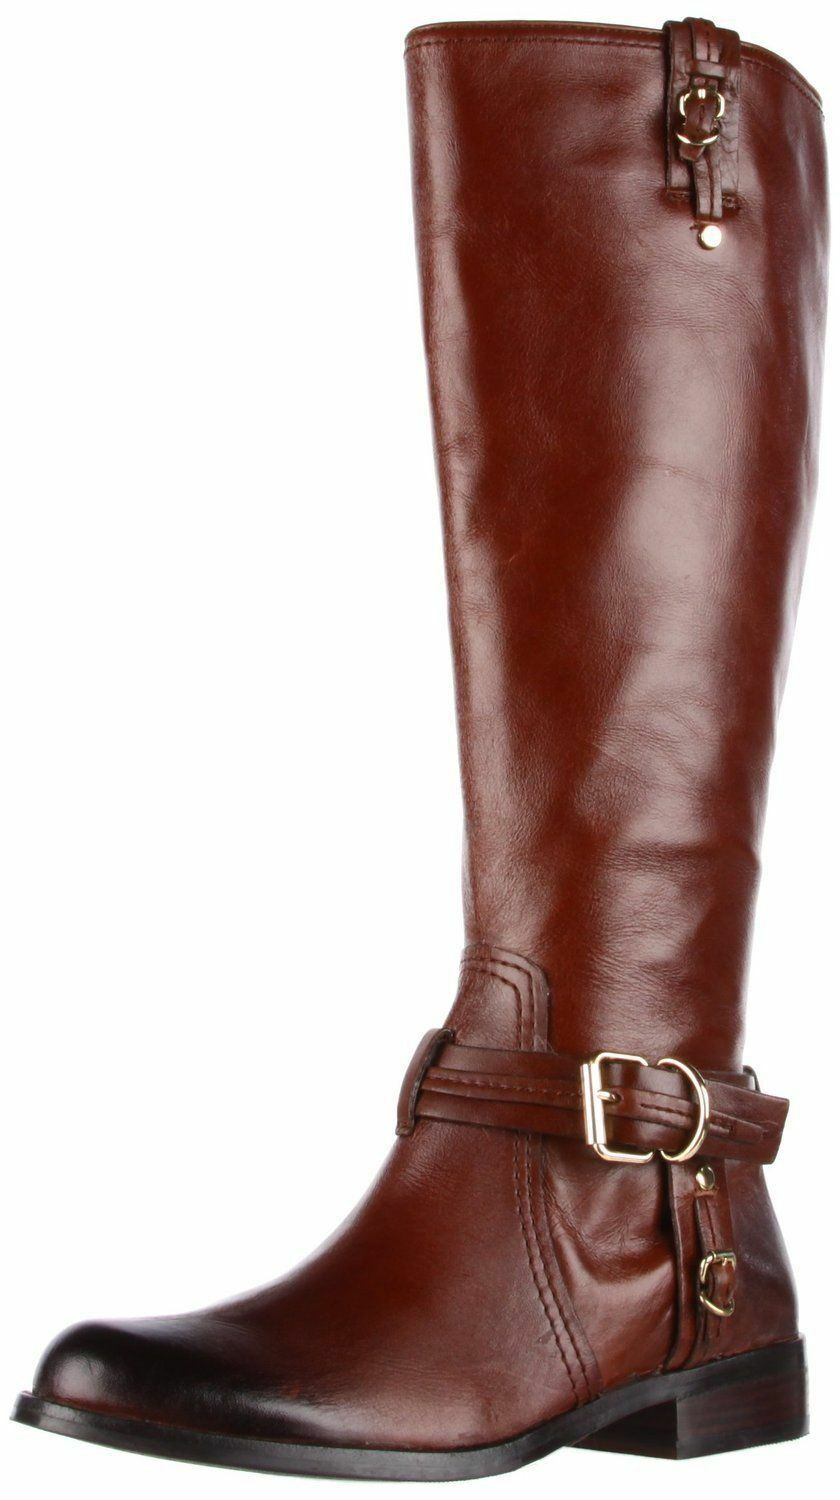 New VC Vince Camuto Womens KABO Rich Cocoa Rich Calf Luxe Leather Boots 6 M  210